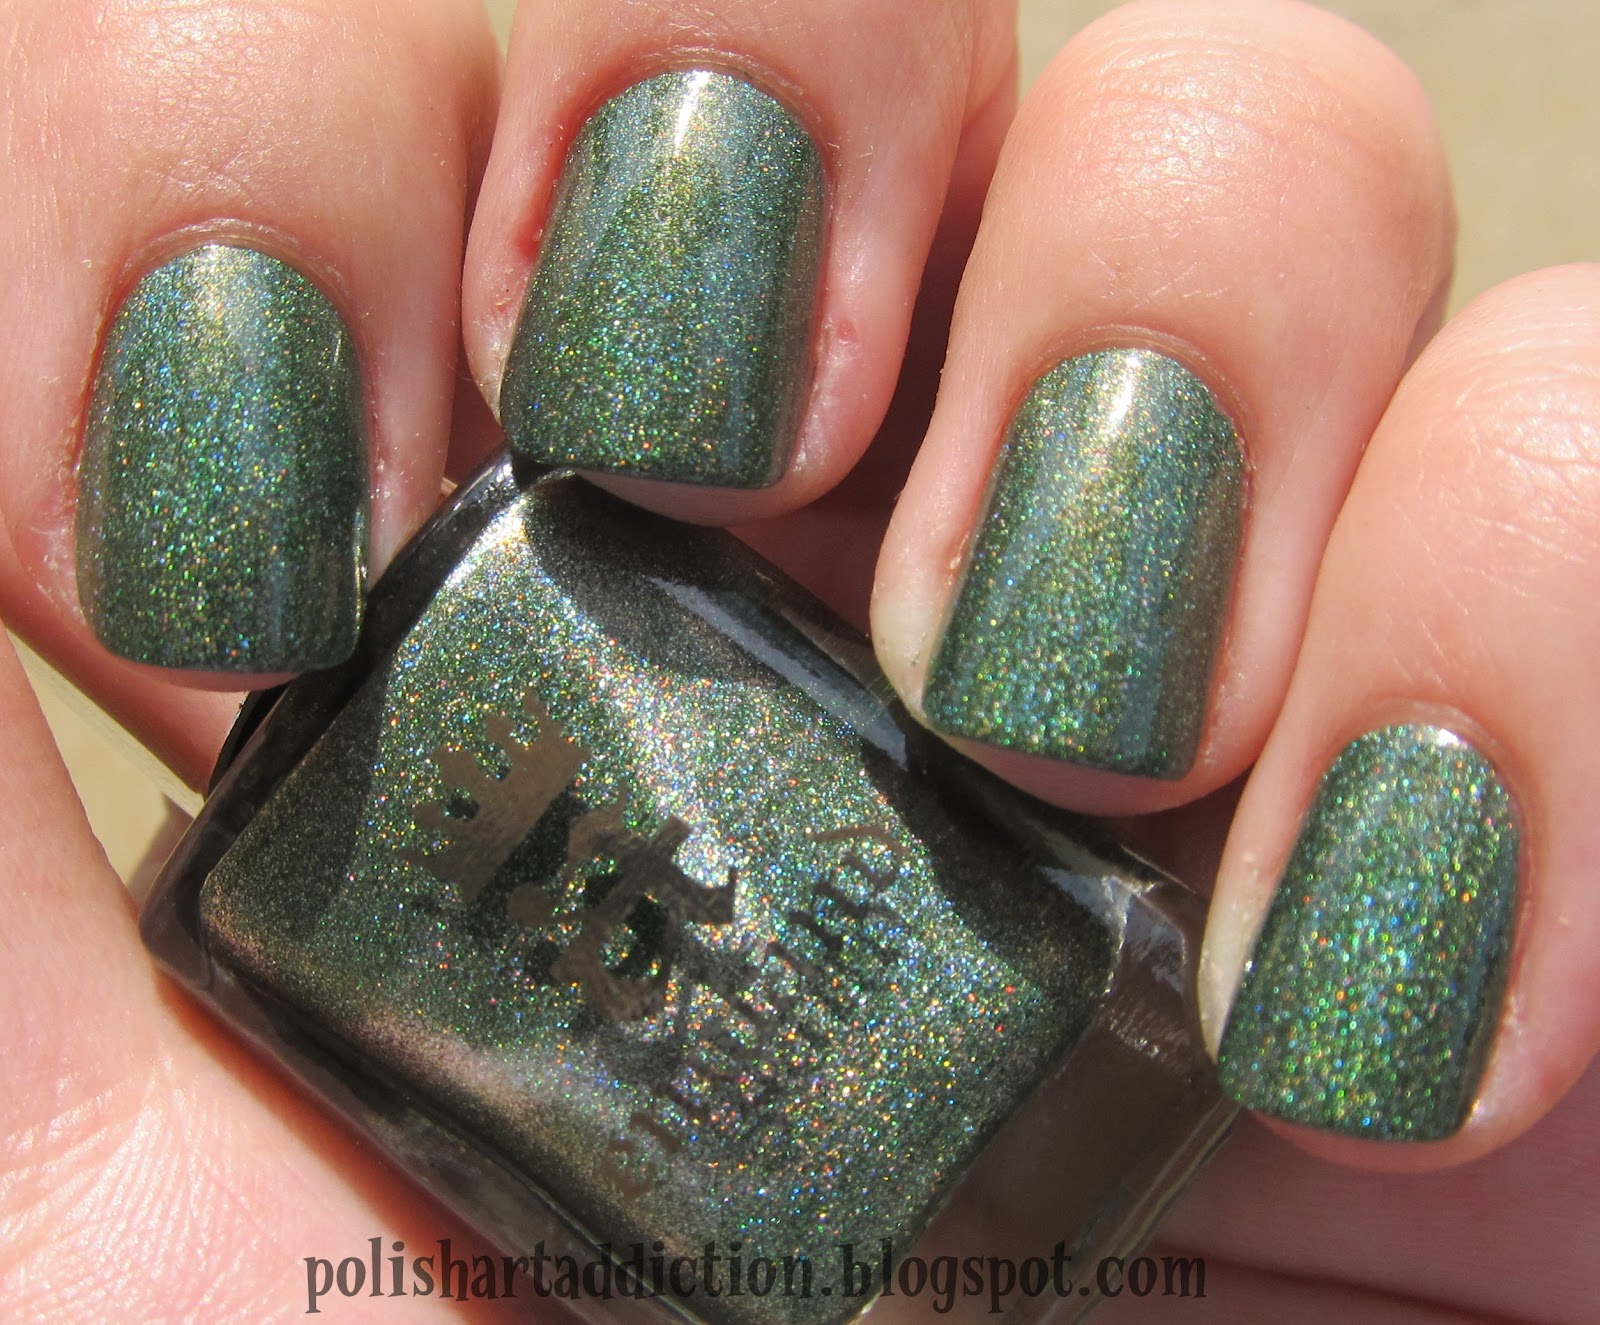 AEngland - Dragon Swatch